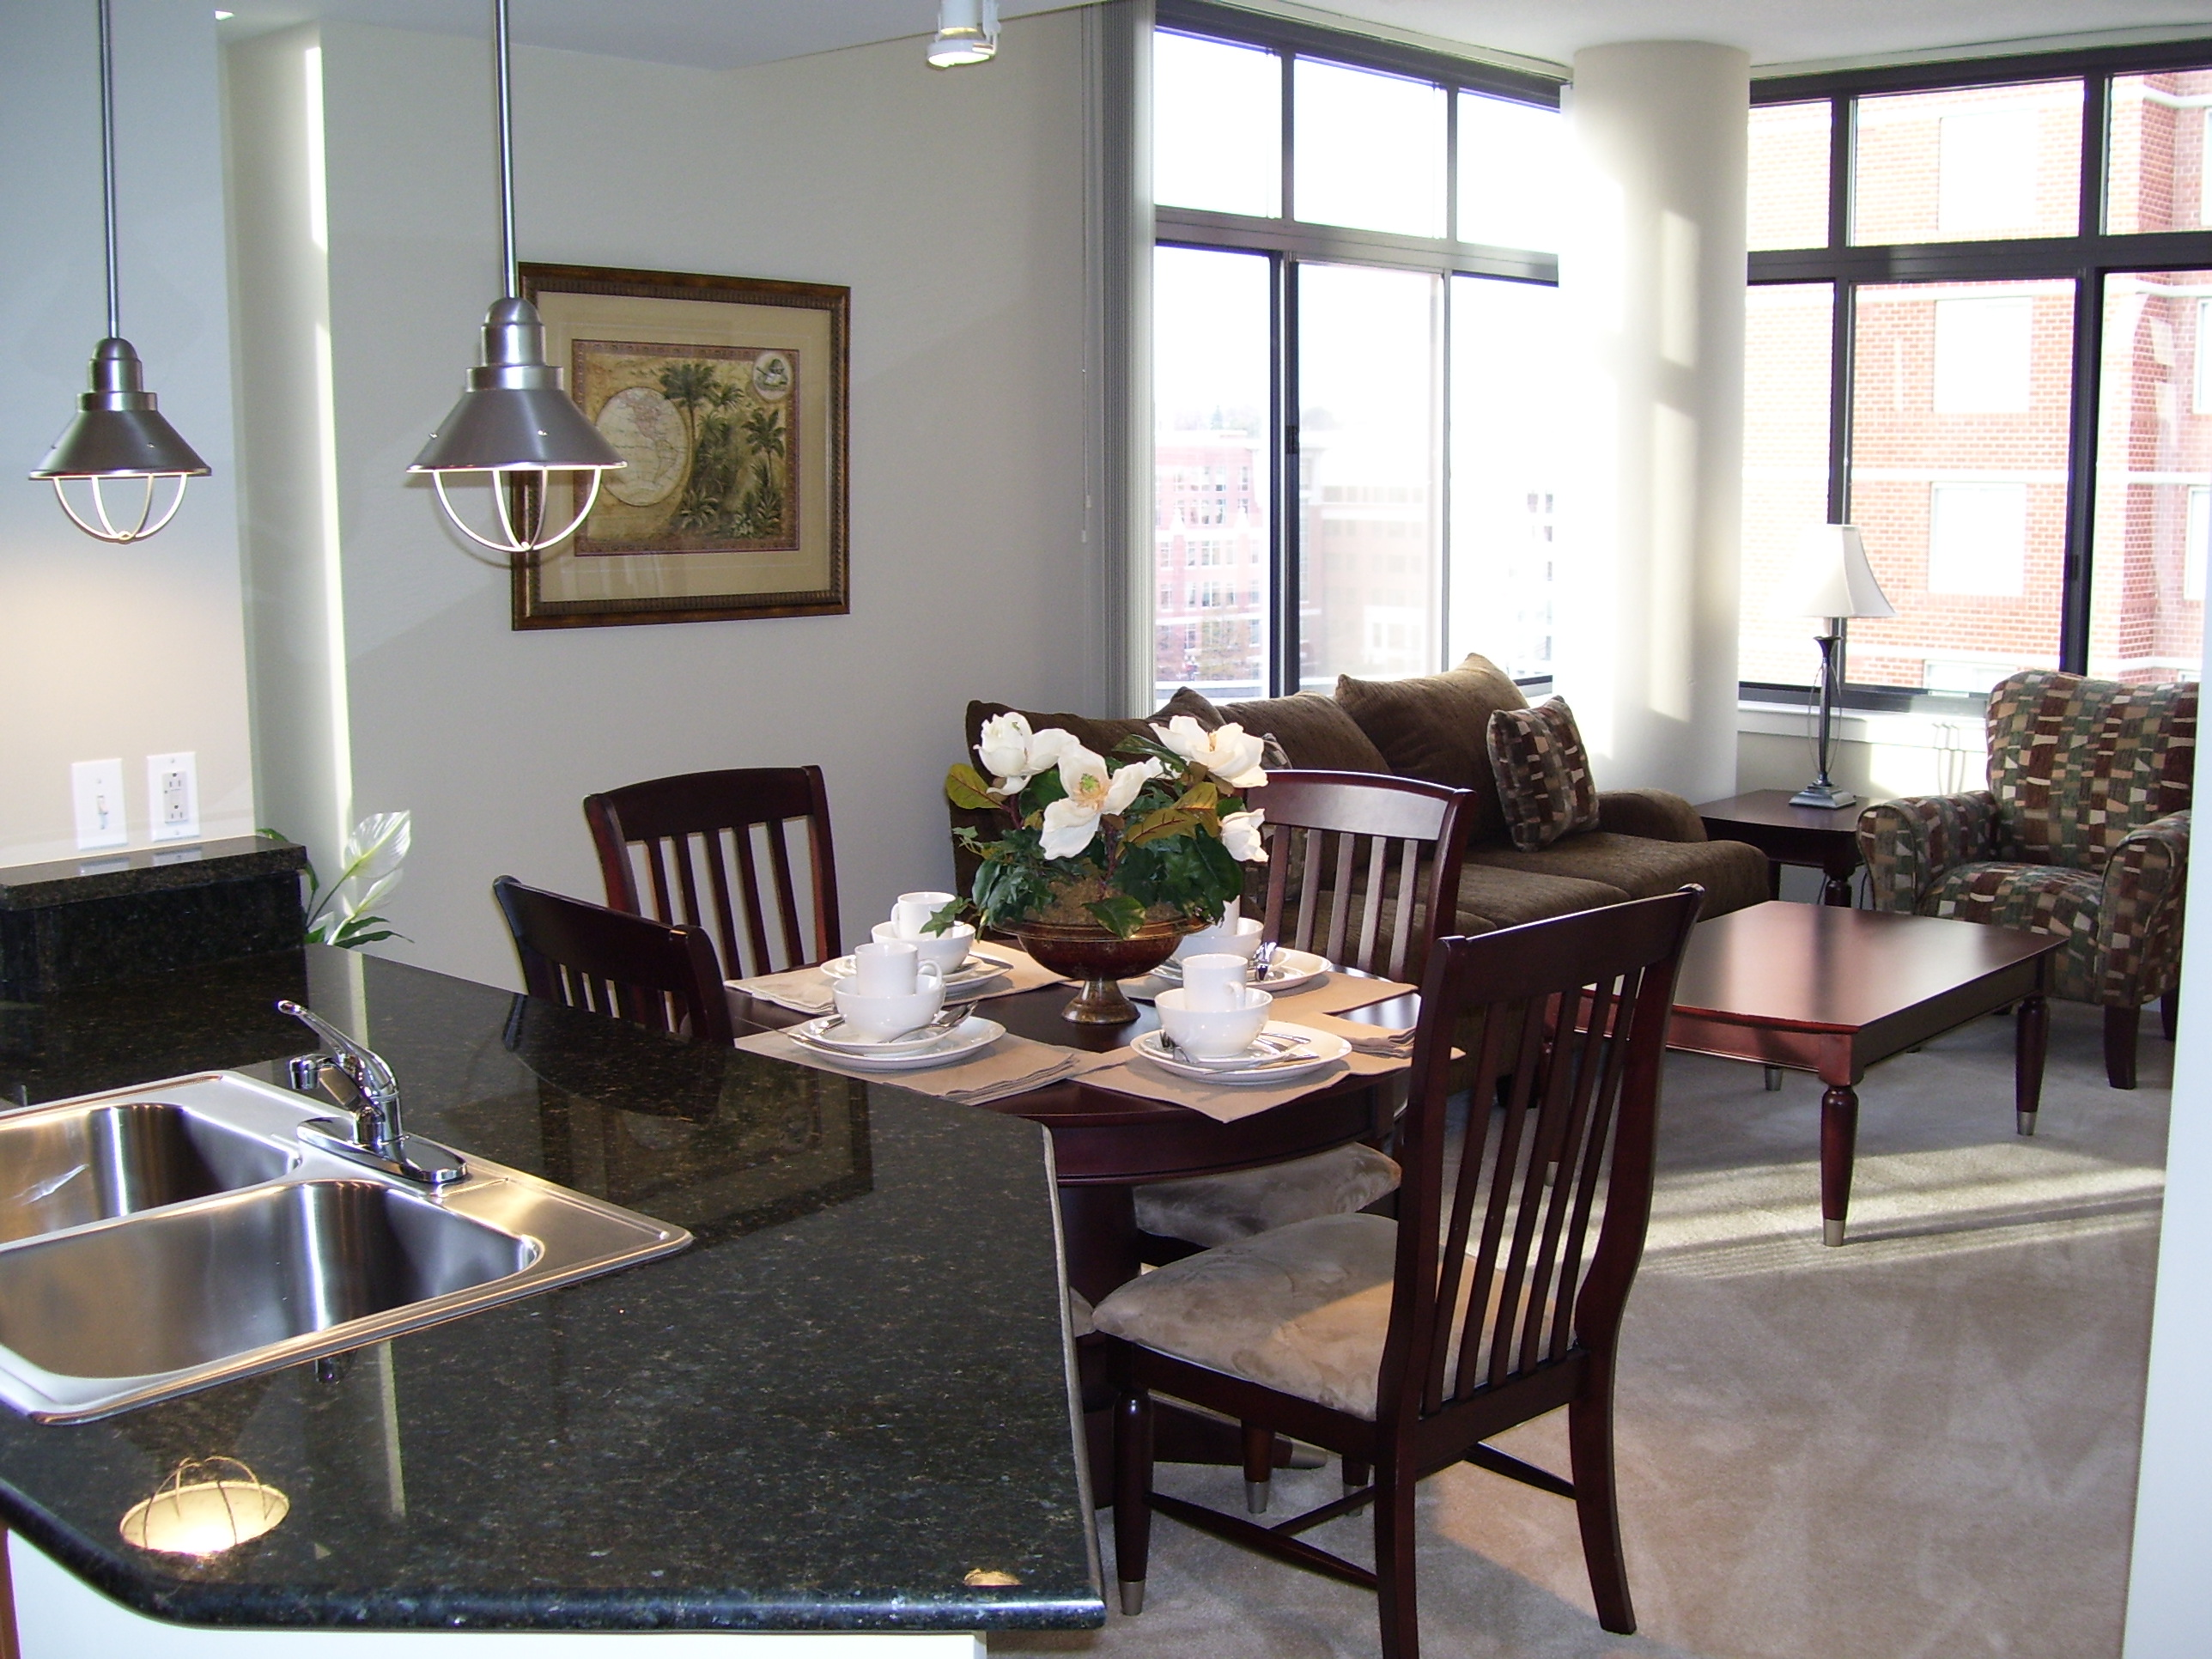 Post carlyle square apartments in alexandria corporate